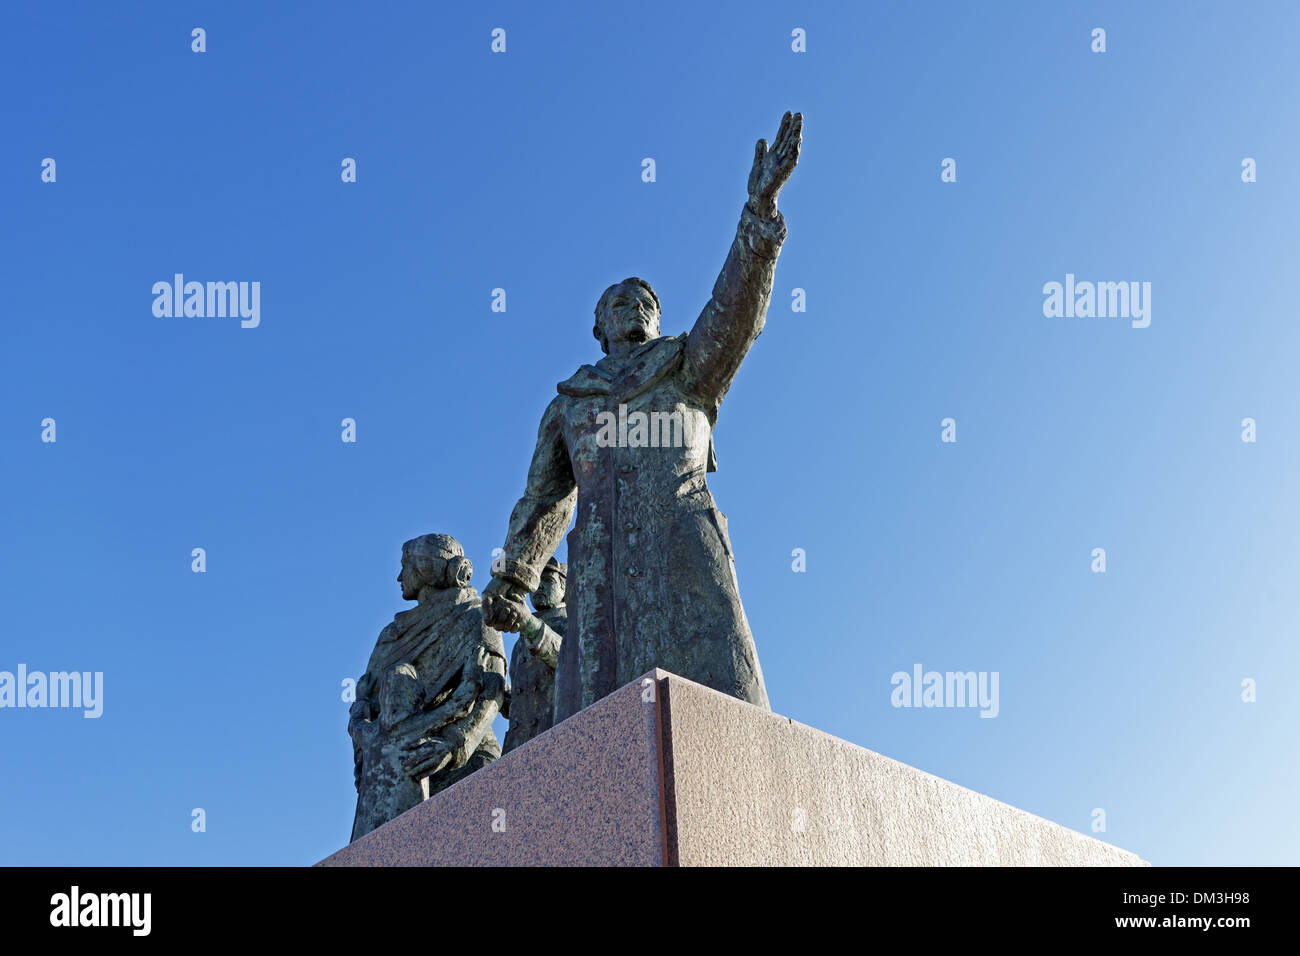 Europe Germany Bremen Bremerhaven Willy Brandt square emigrant's monument emigrant monument detail statues place of interest - Stock Image